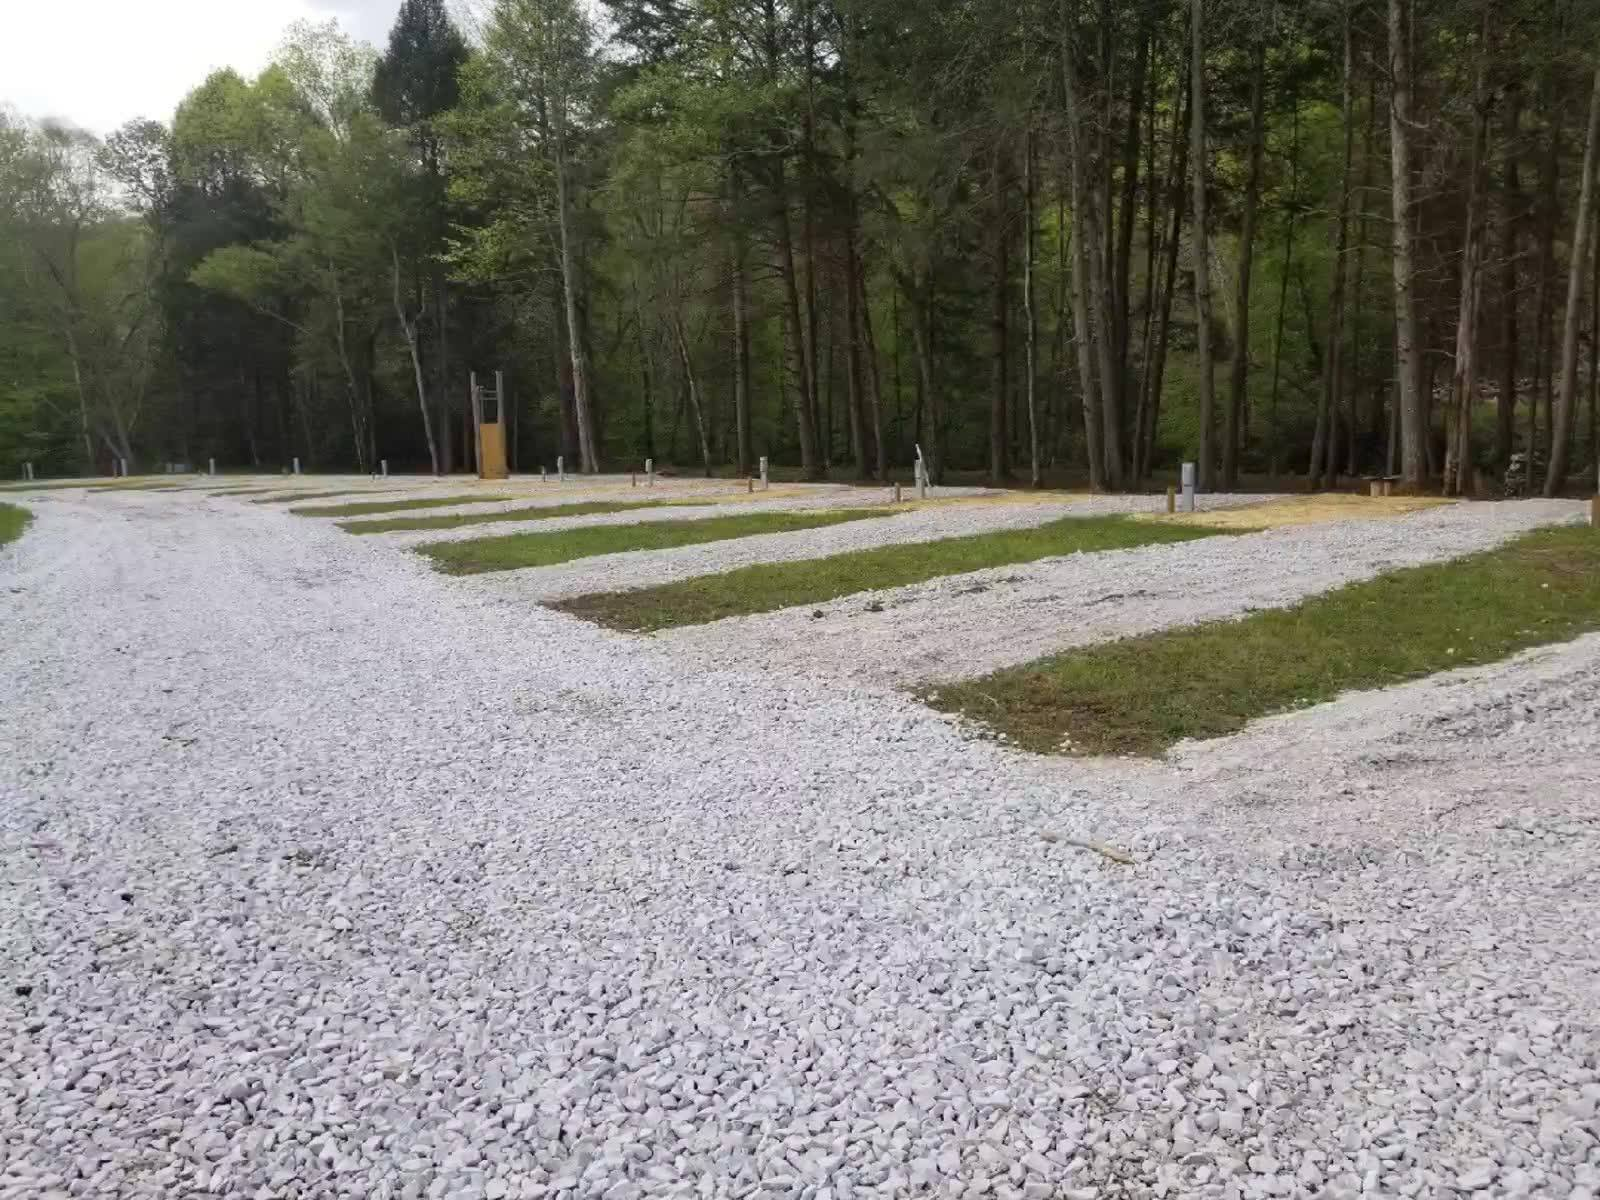 Construction Update 5- It's beginning to look more like a campground than a construction zone! We are very excited. Opening Memorial Day-Give us a call to book your stay!